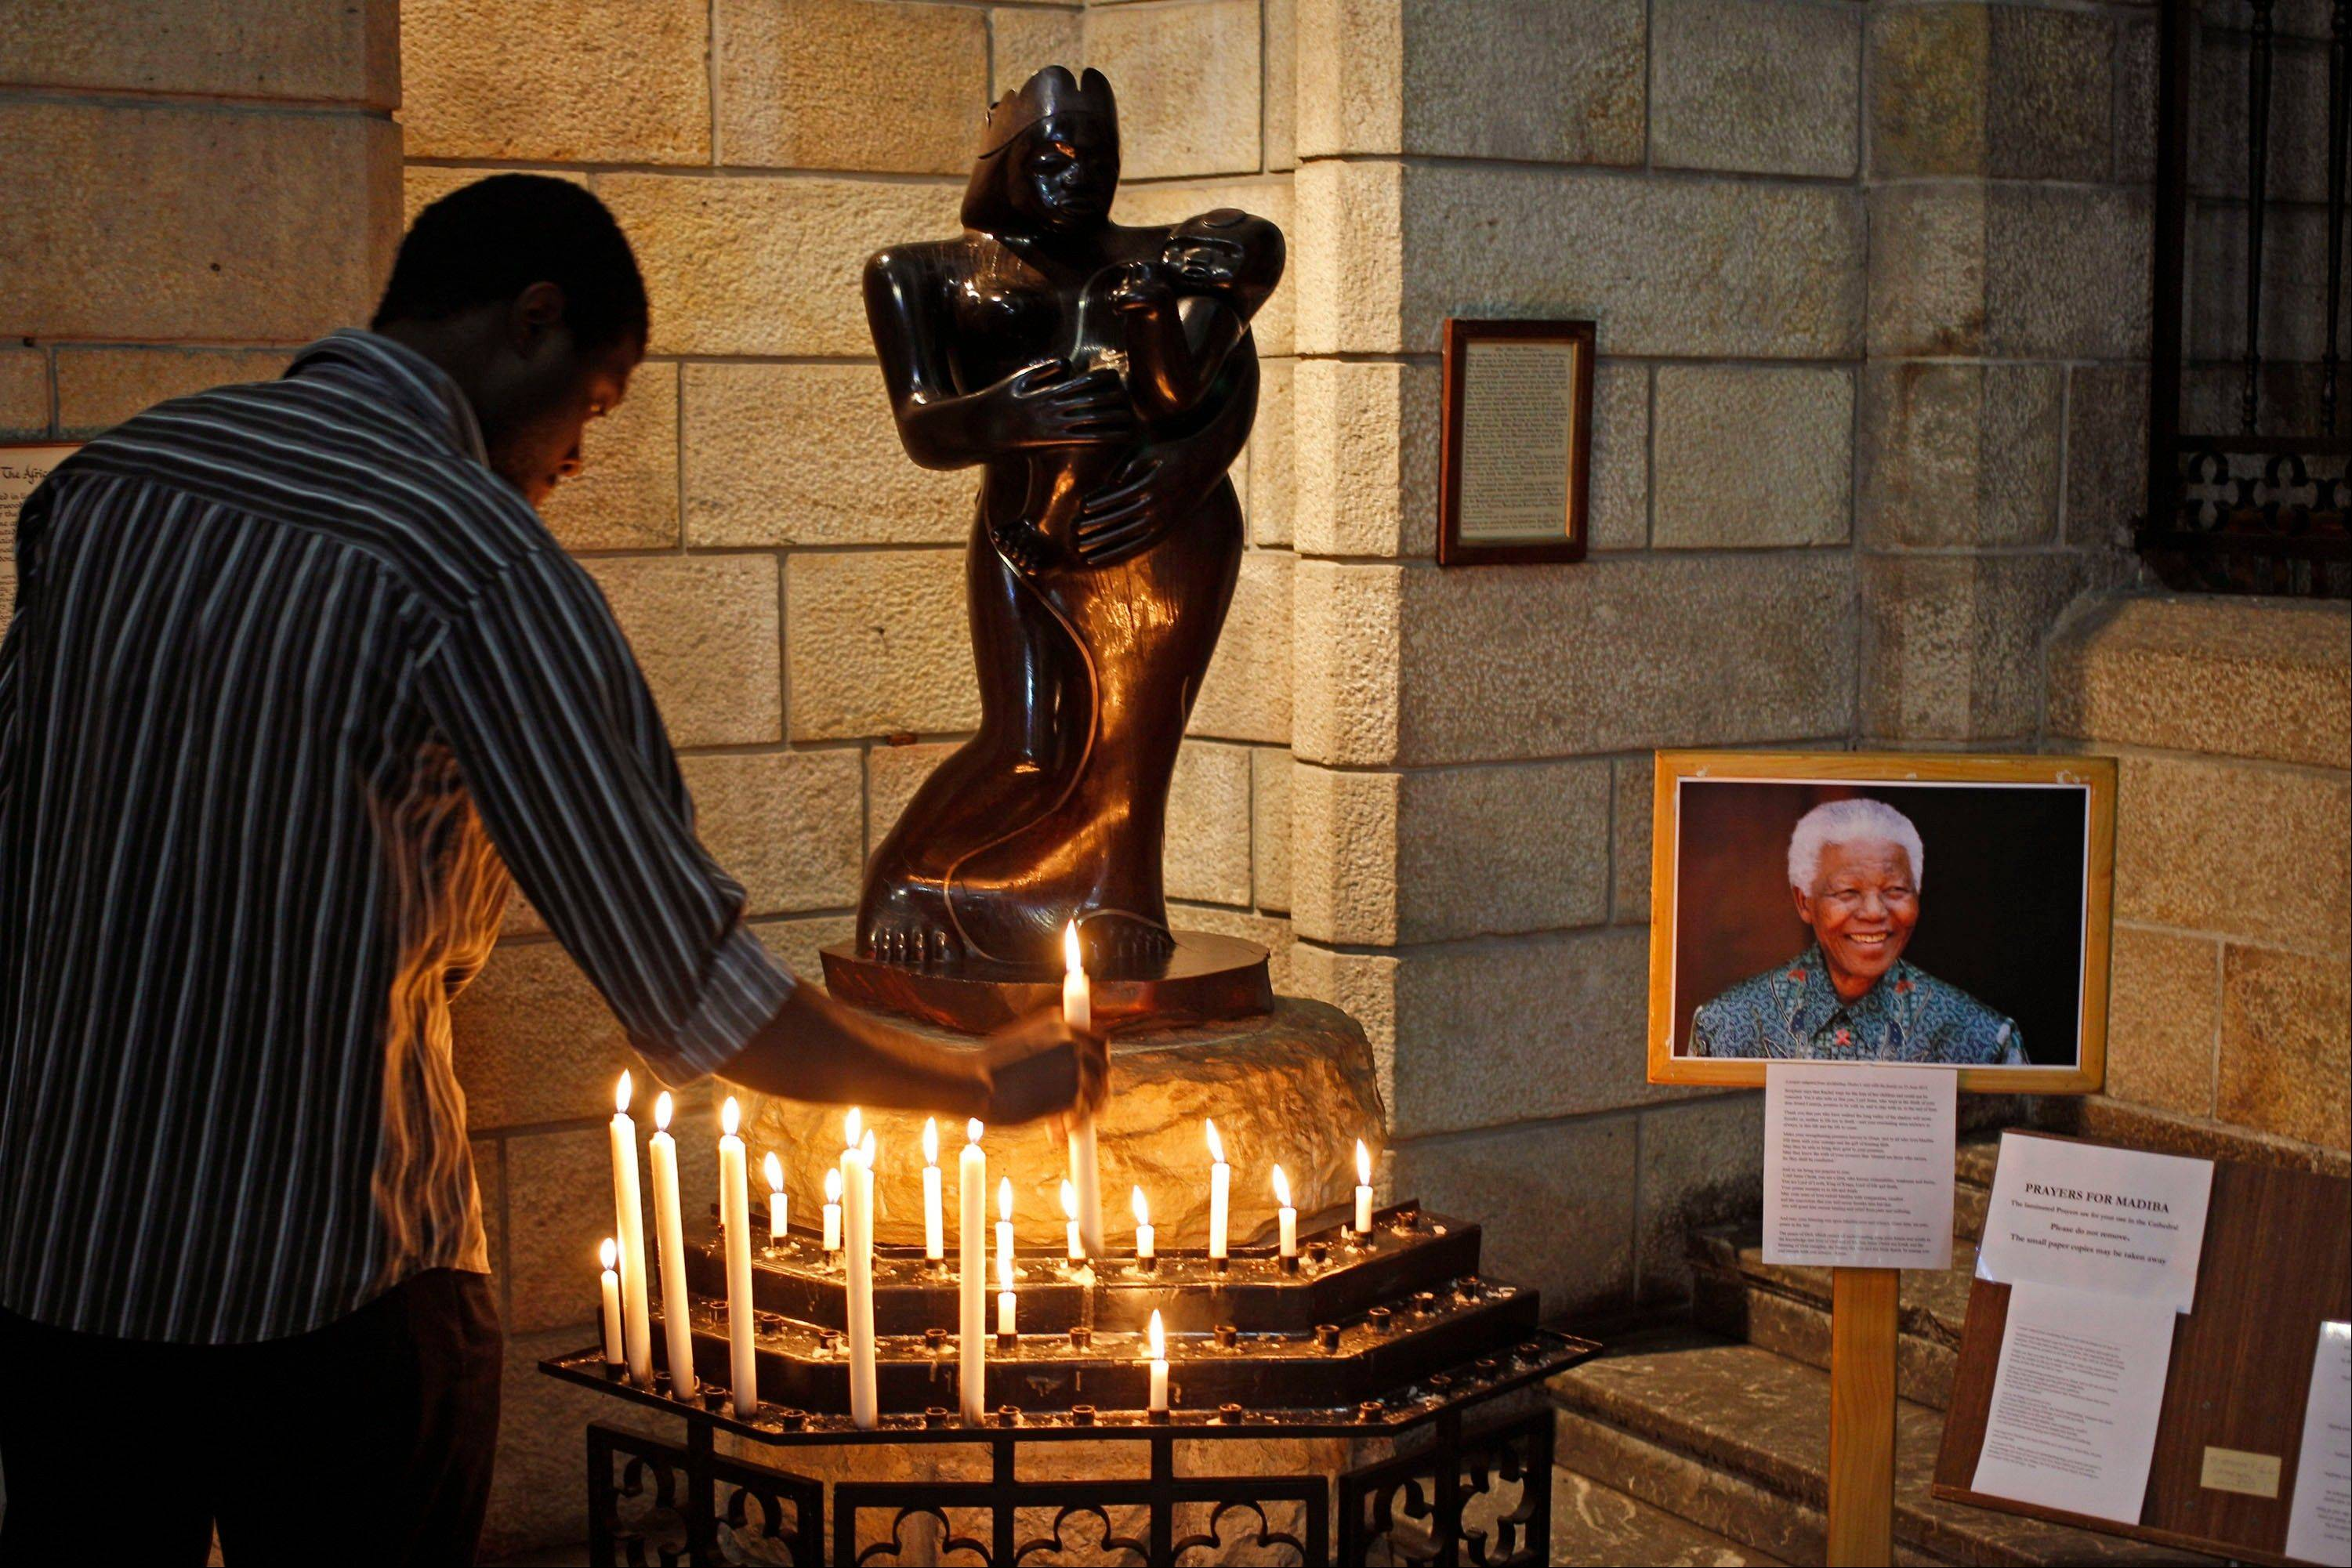 A man places a candle after he prayed for former South African President Nelson Mandela inside the St. George's Cathedral in Cape Town, South Africa, Wednesday, July 17, 2013.